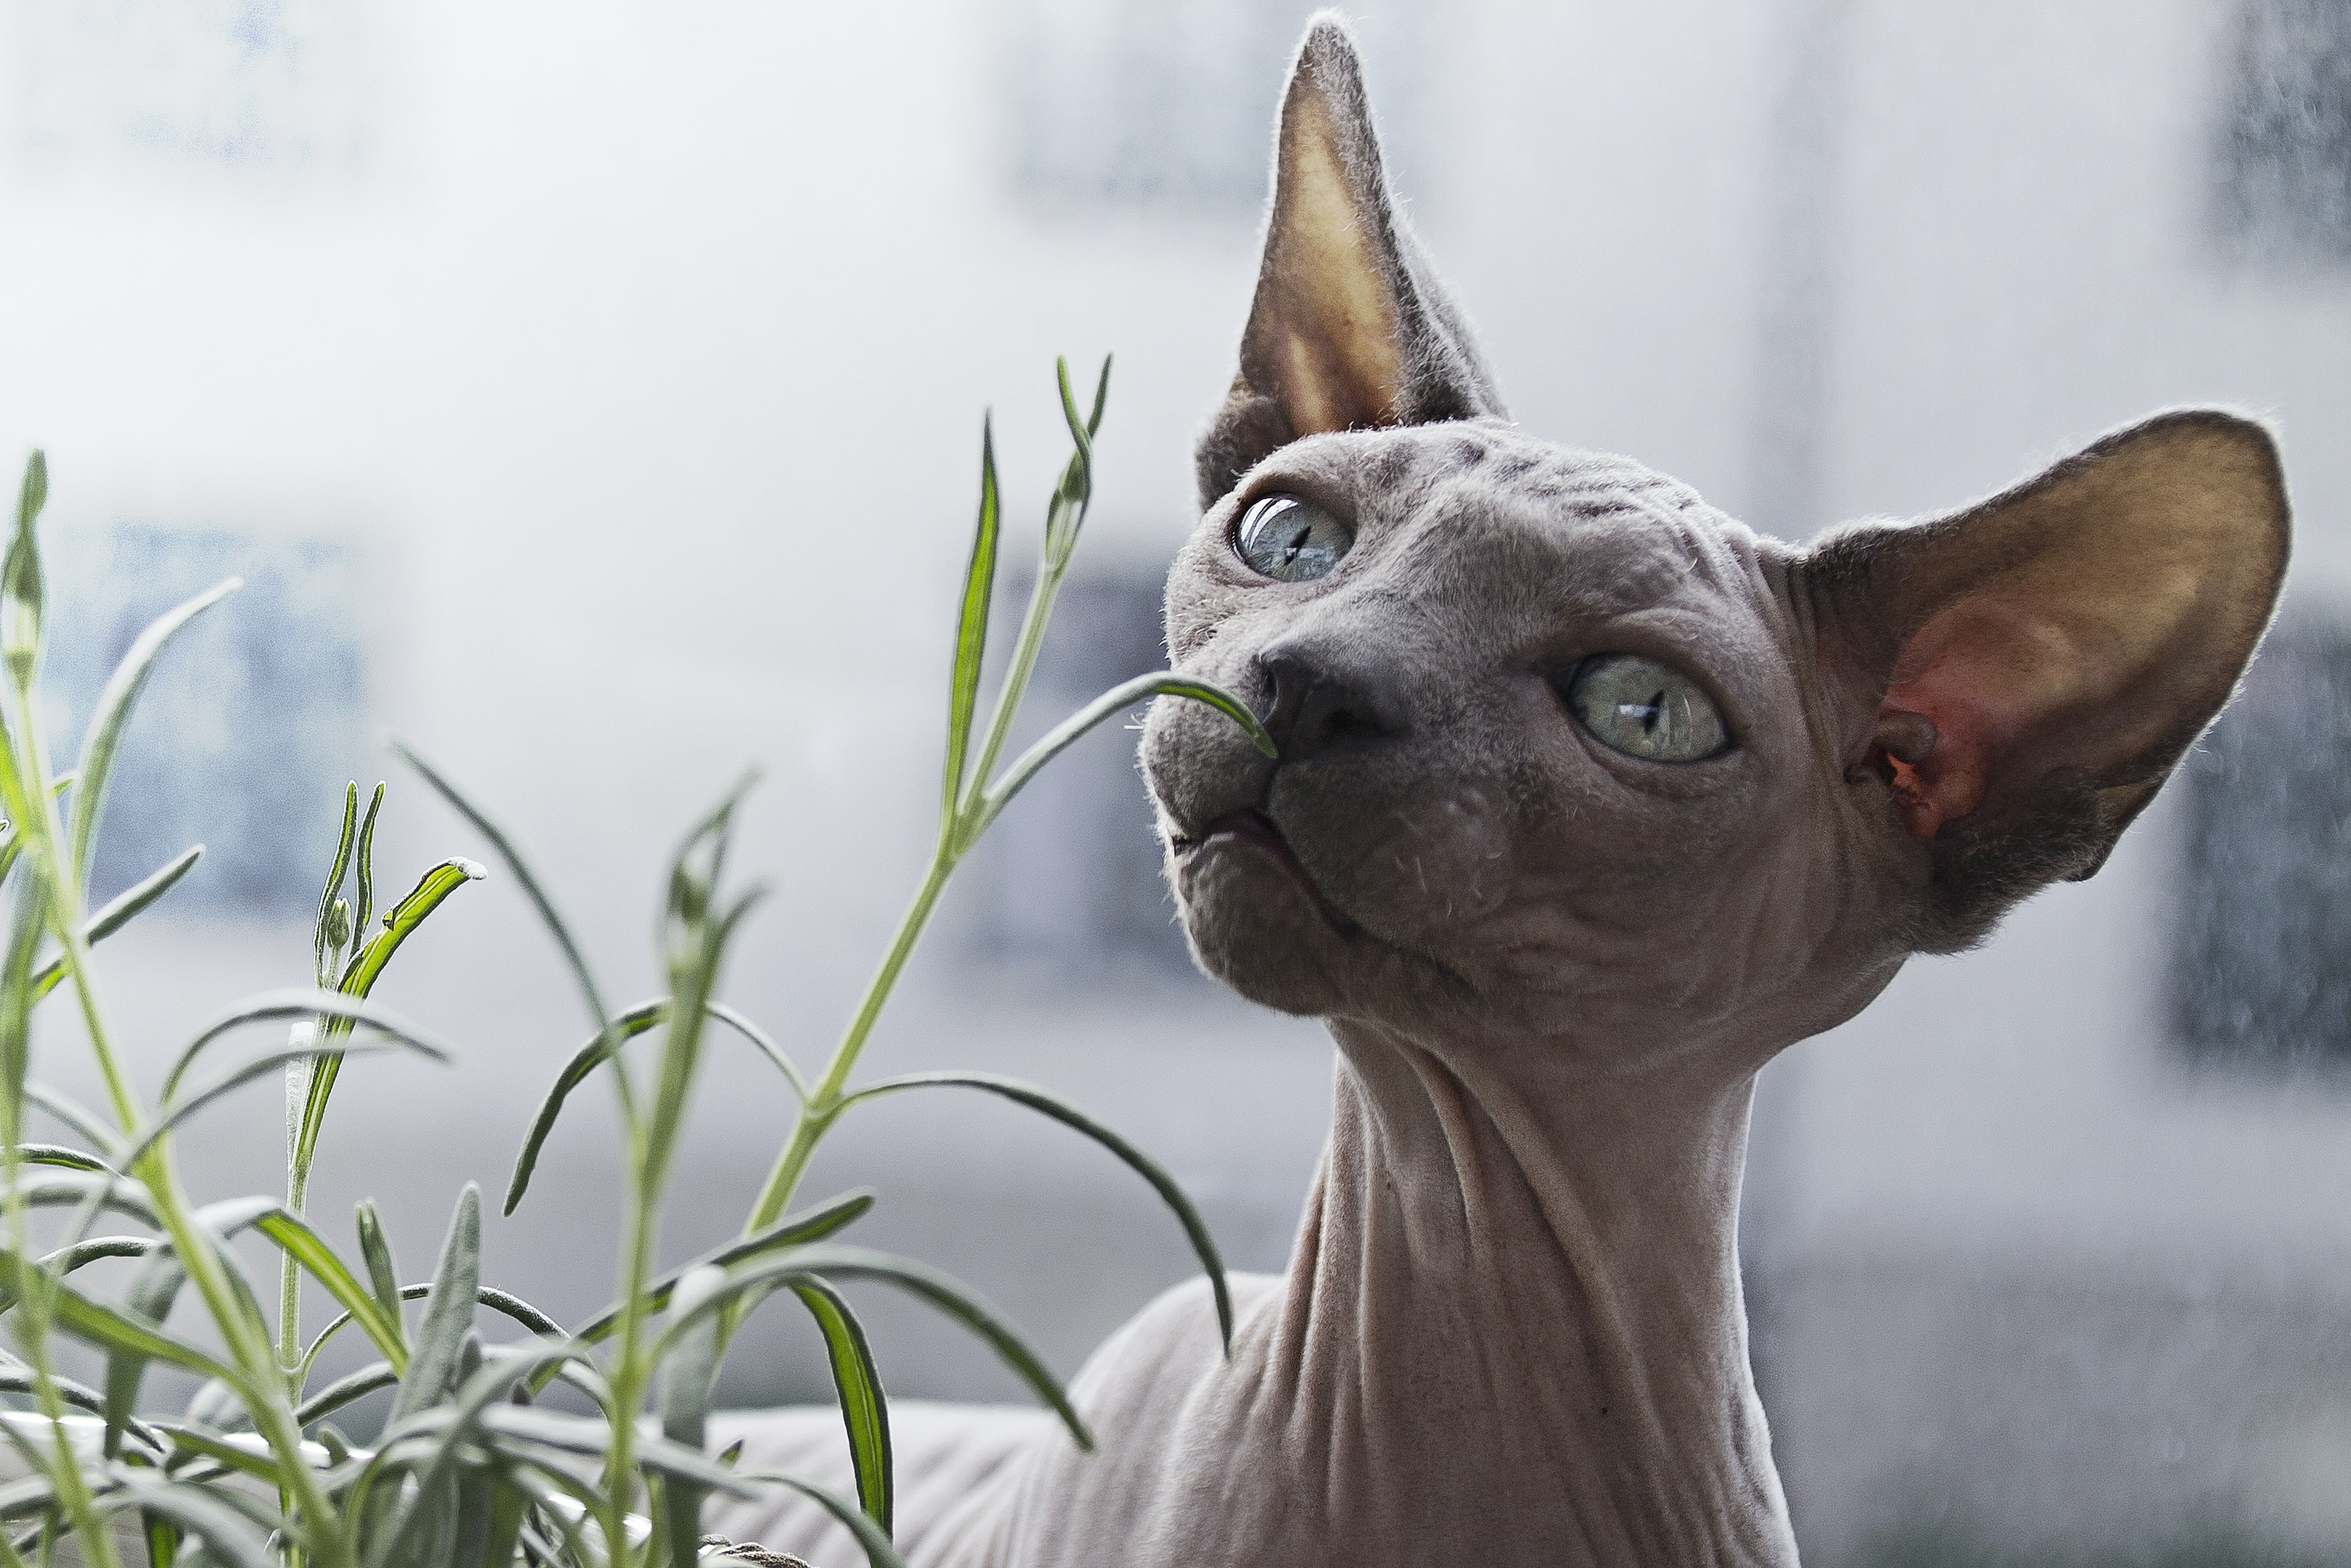 Close-up of a hairless Sphynx cat sniffing a plant